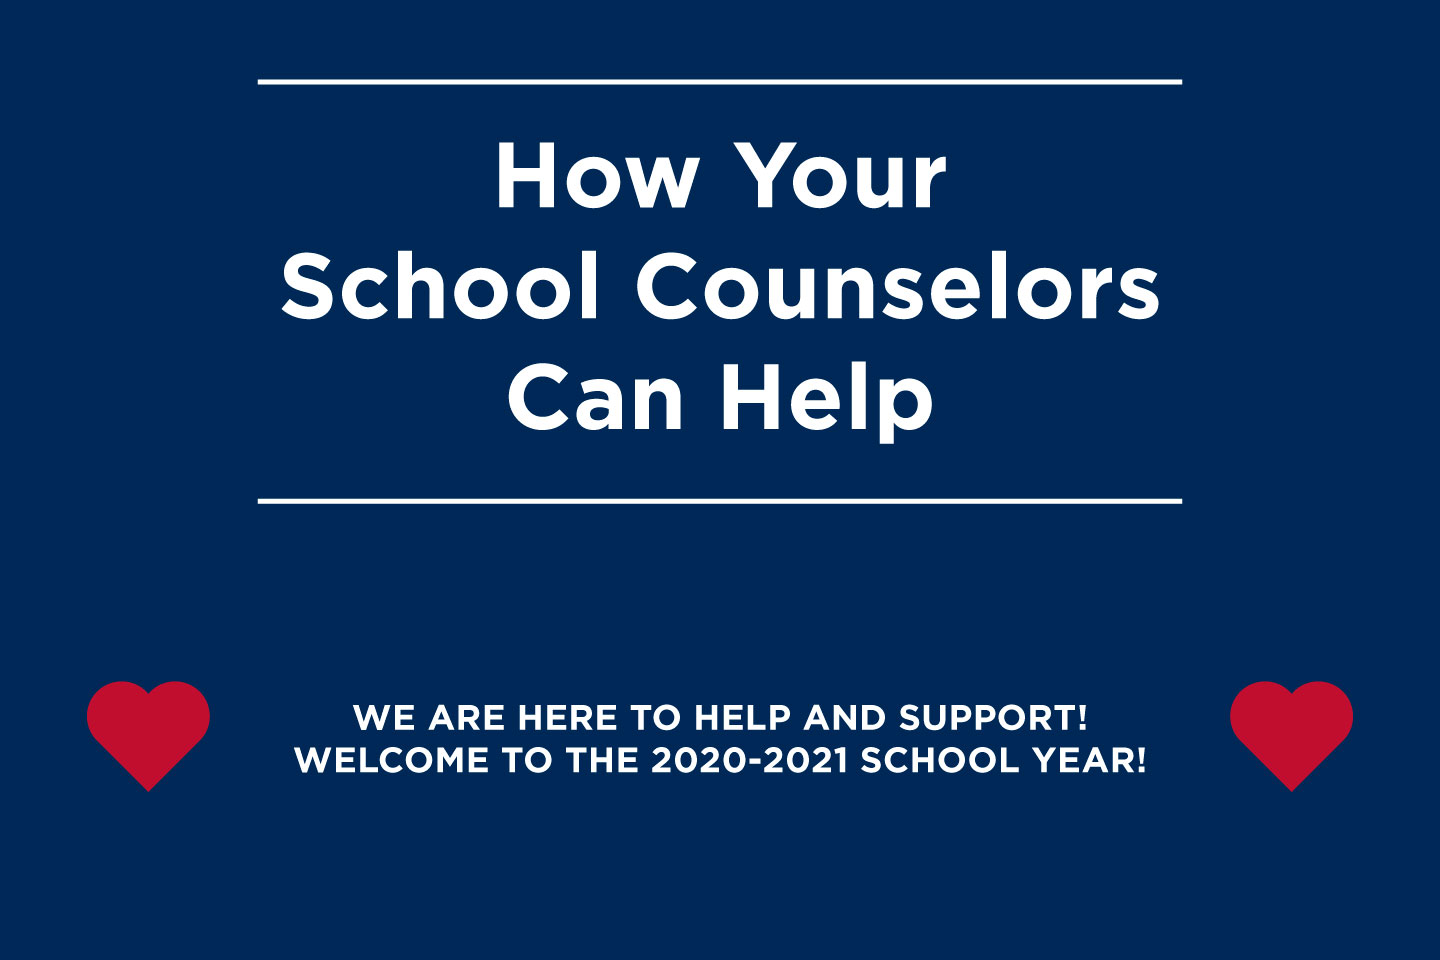 how your school counselors can help